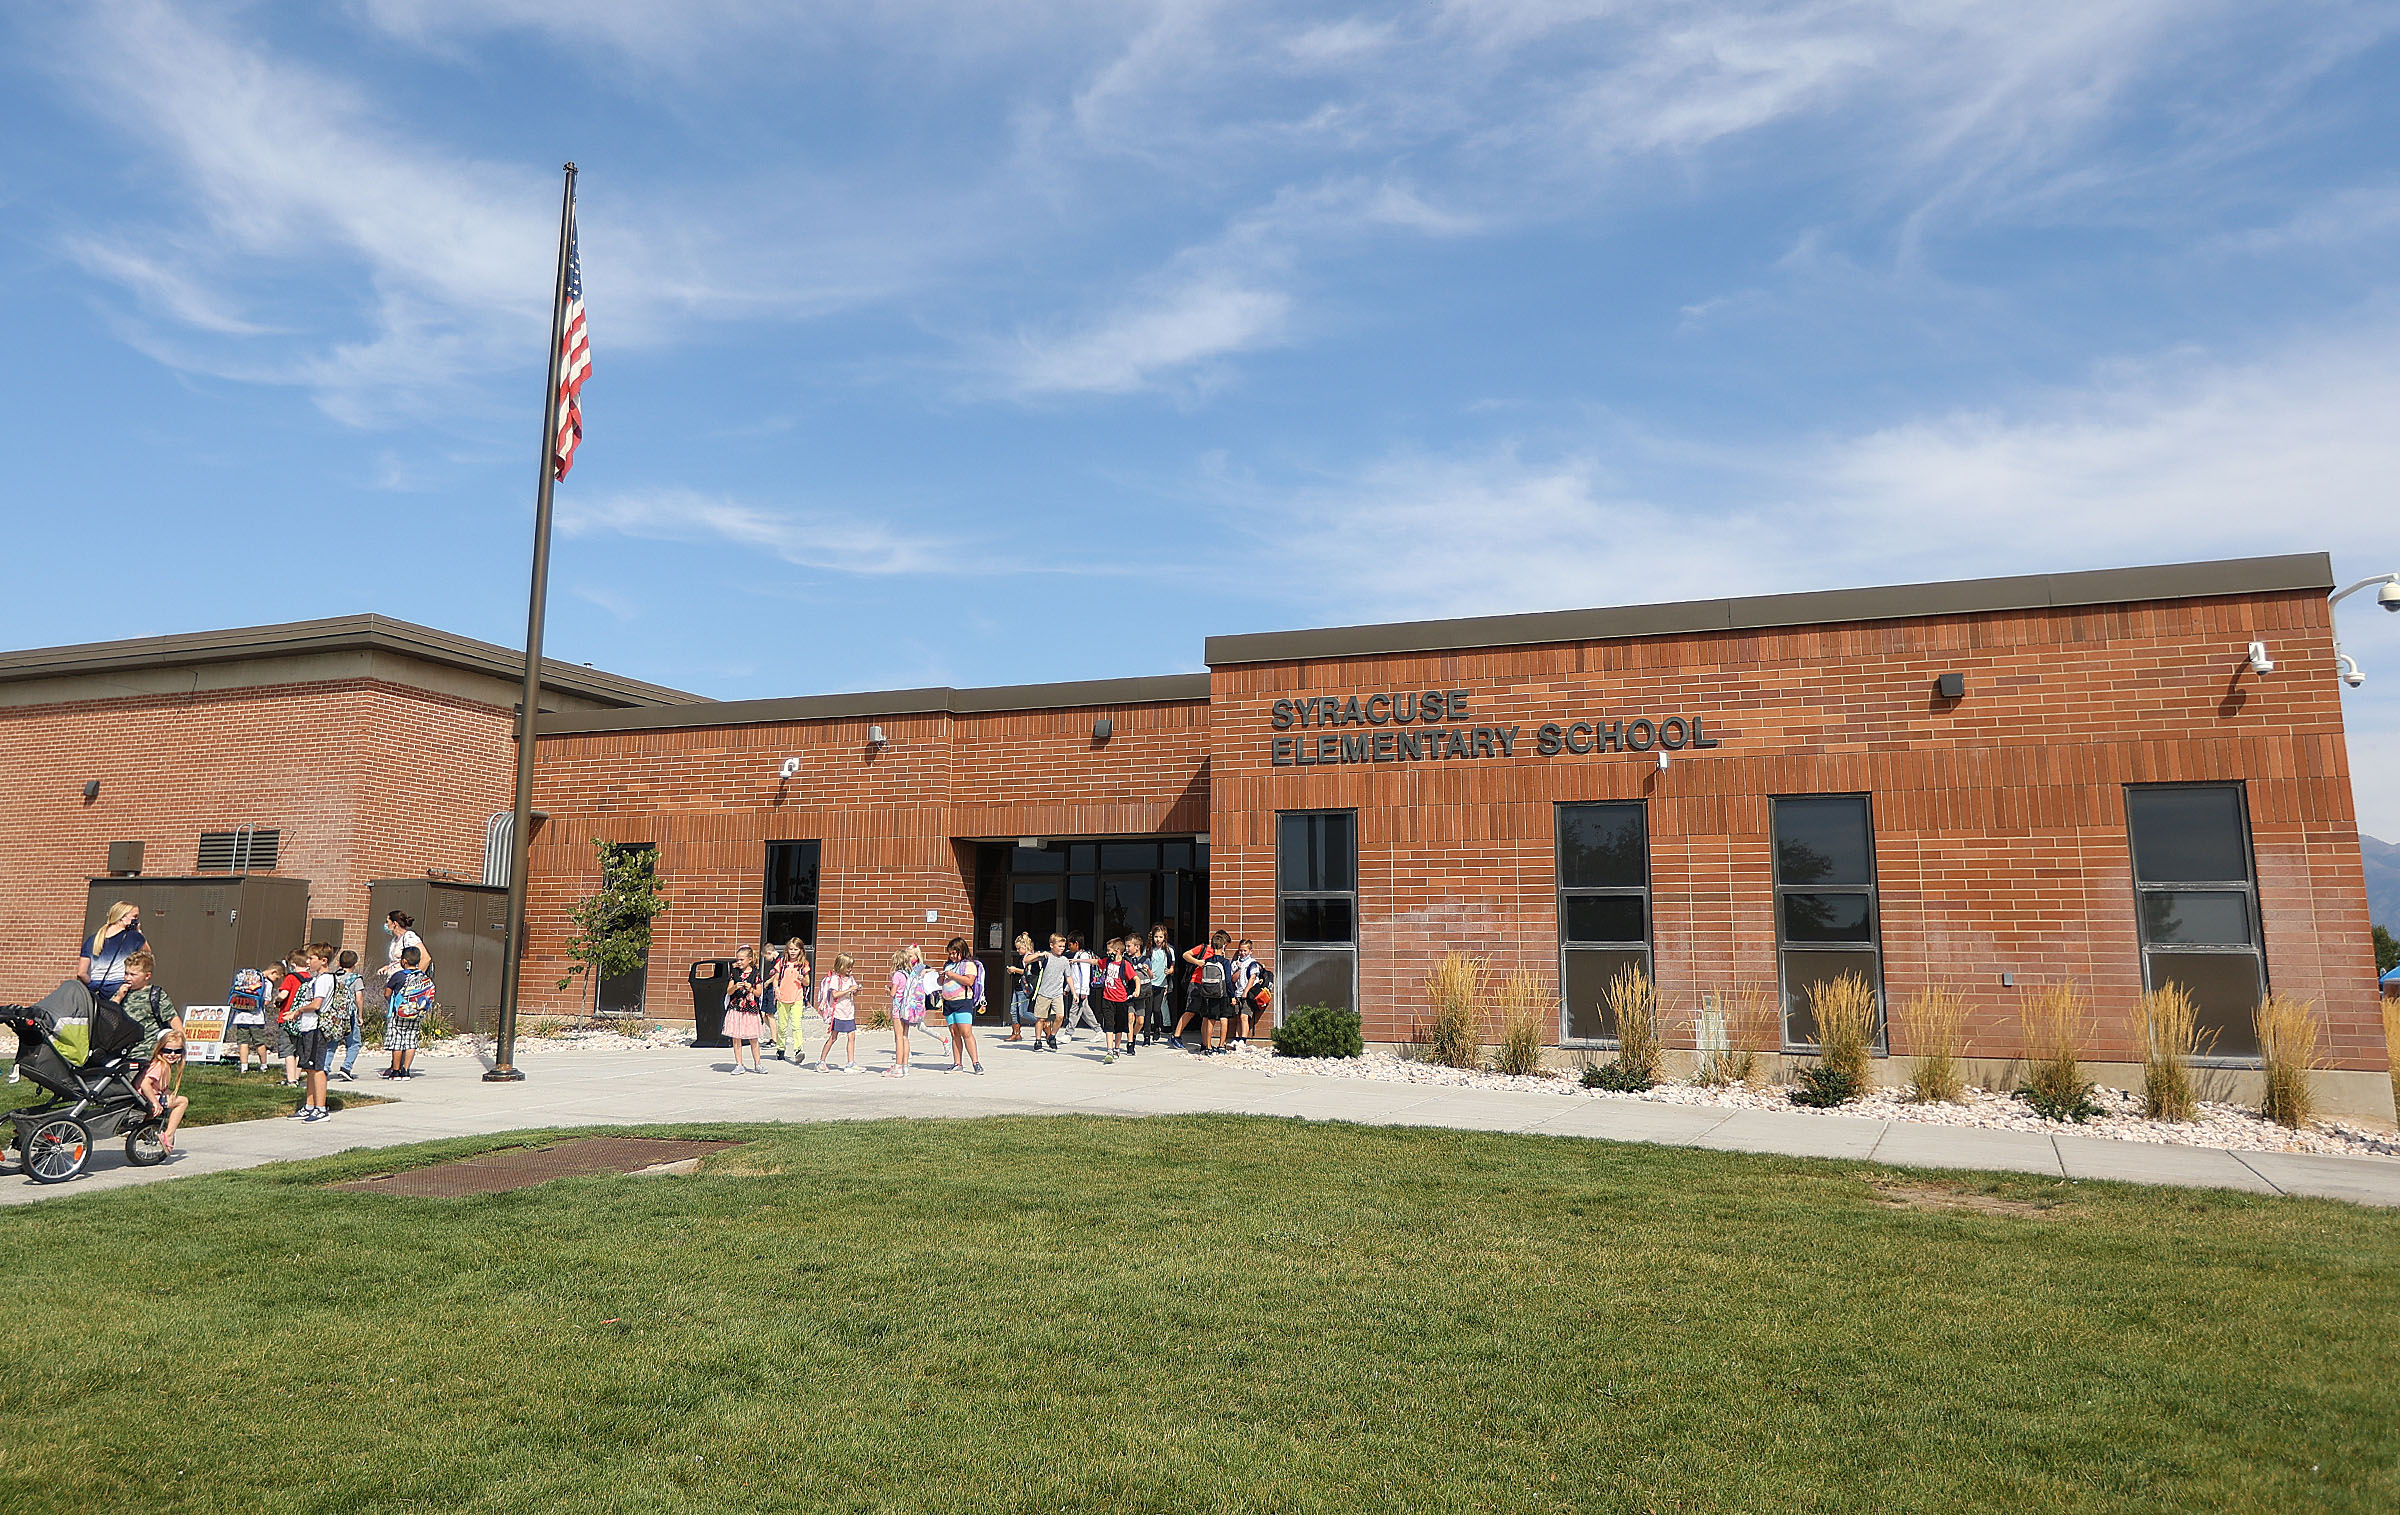 """Students leave Syracuse Elementary School in Syracuse at the end of the school day on Monday, Sept. 13, 2021. The Davis County school will conduct a """"test to stay"""" event on Tuesday after more than 30 students and staff were diagnosed with COVID-19, according to a letter to parents."""